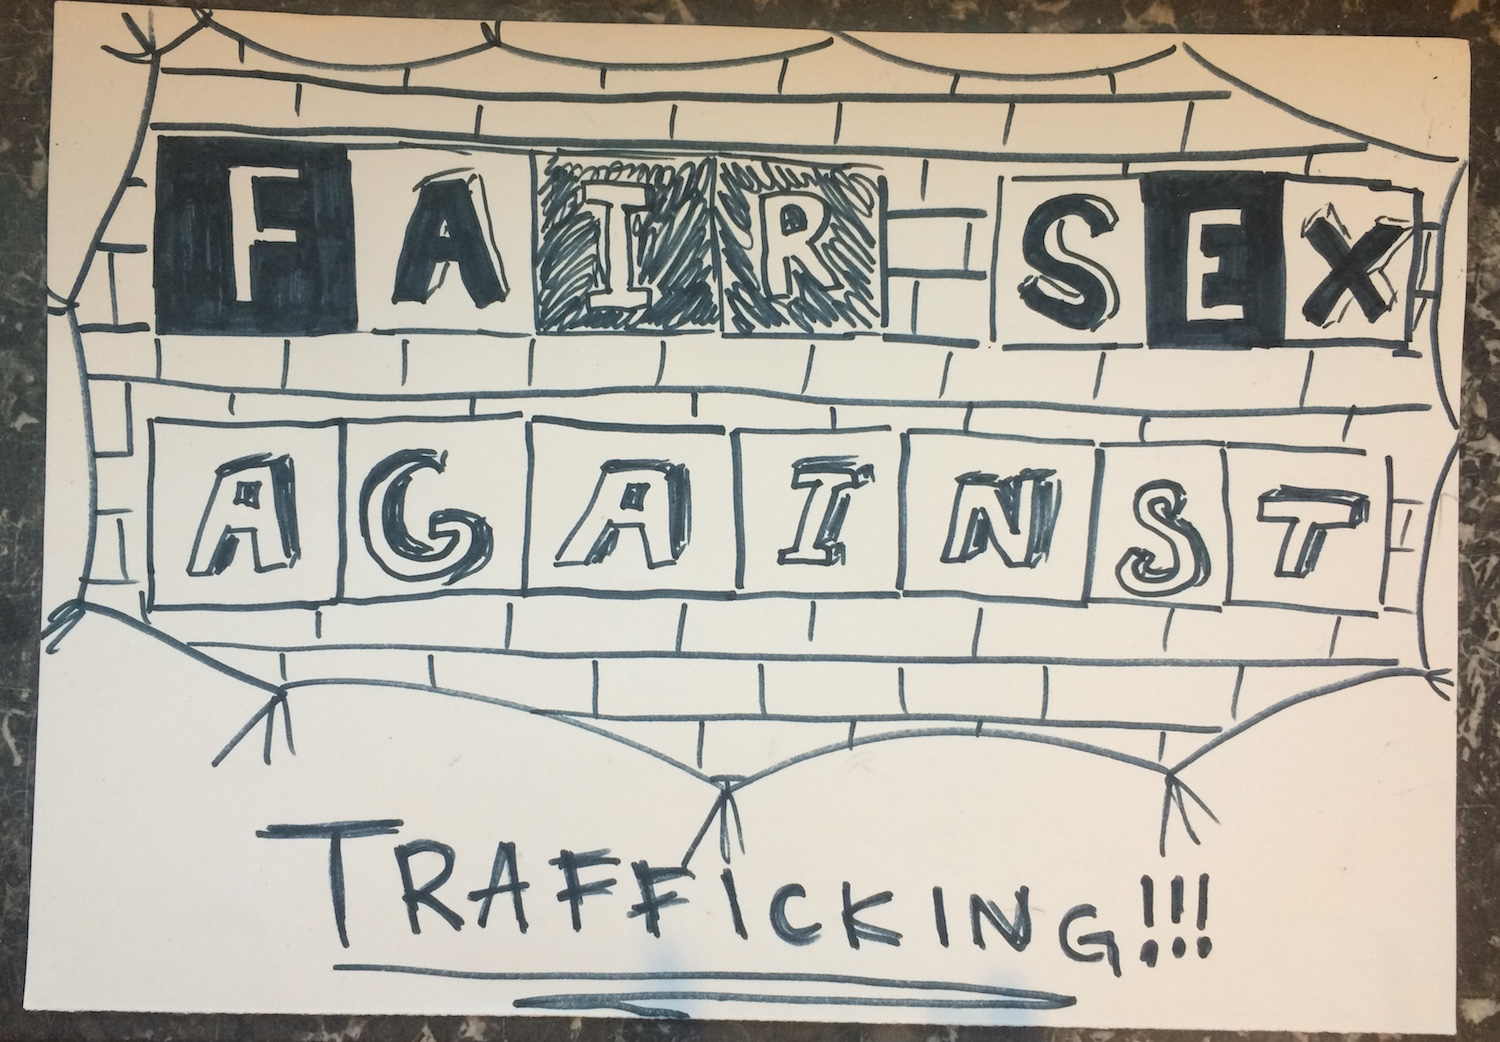 Fair Sex - against trafficking!!!